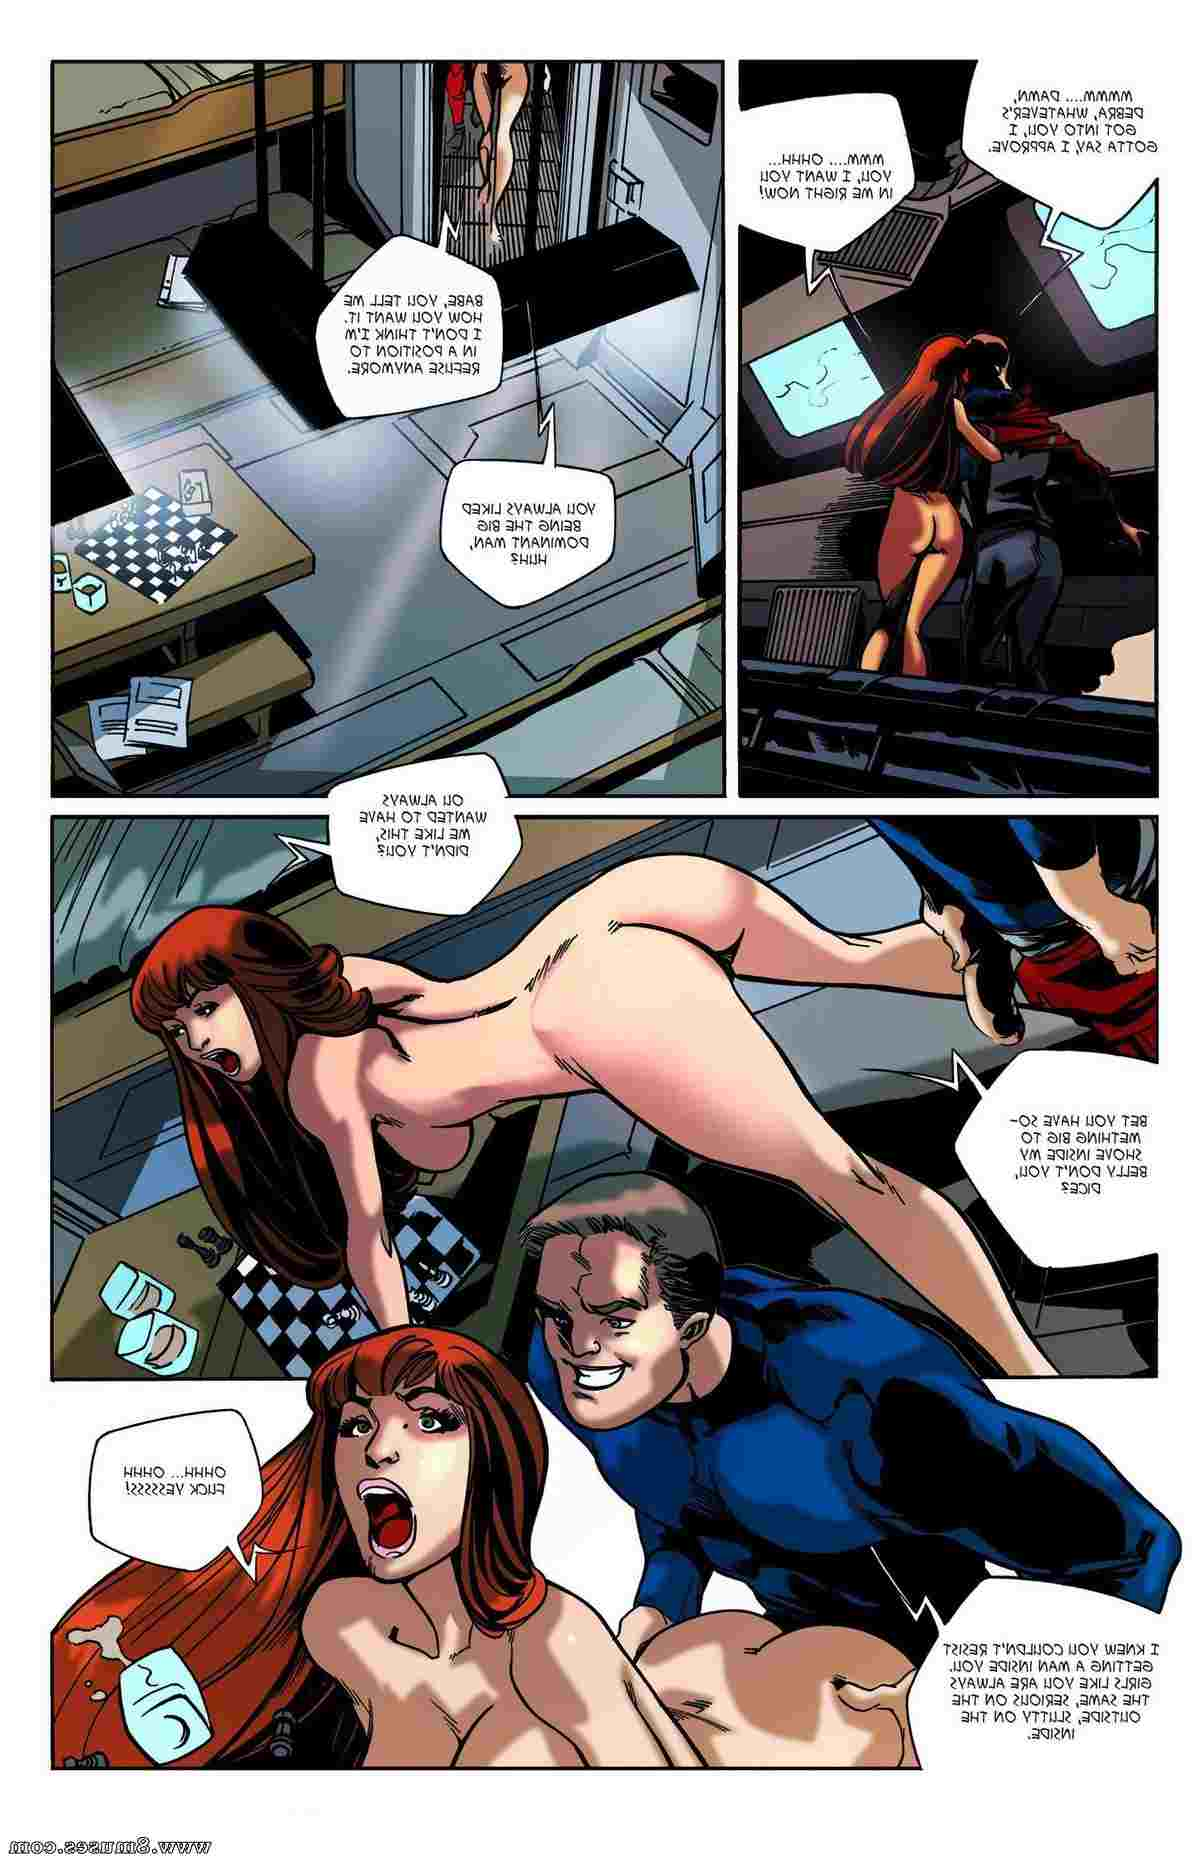 Giantess-Club-Comics/Bubbling-Up-from-the-Abyss Bubbling_Up_from_the_Abyss__8muses_-_Sex_and_Porn_Comics_20.jpg